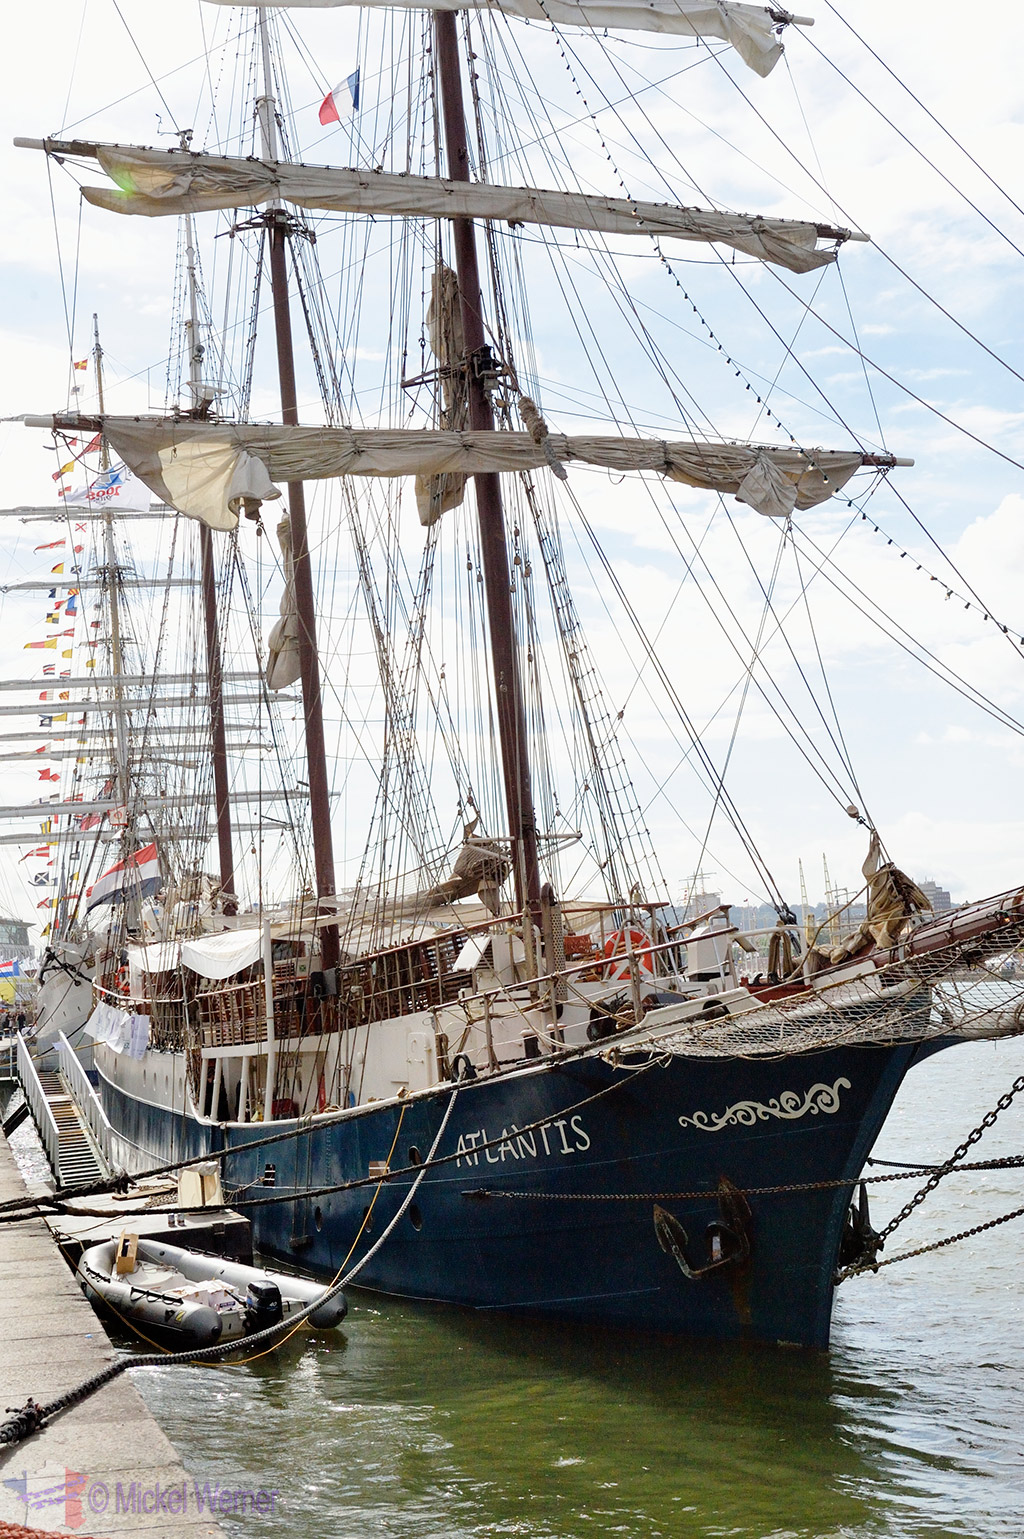 Rouen's Armada of tall sail ships